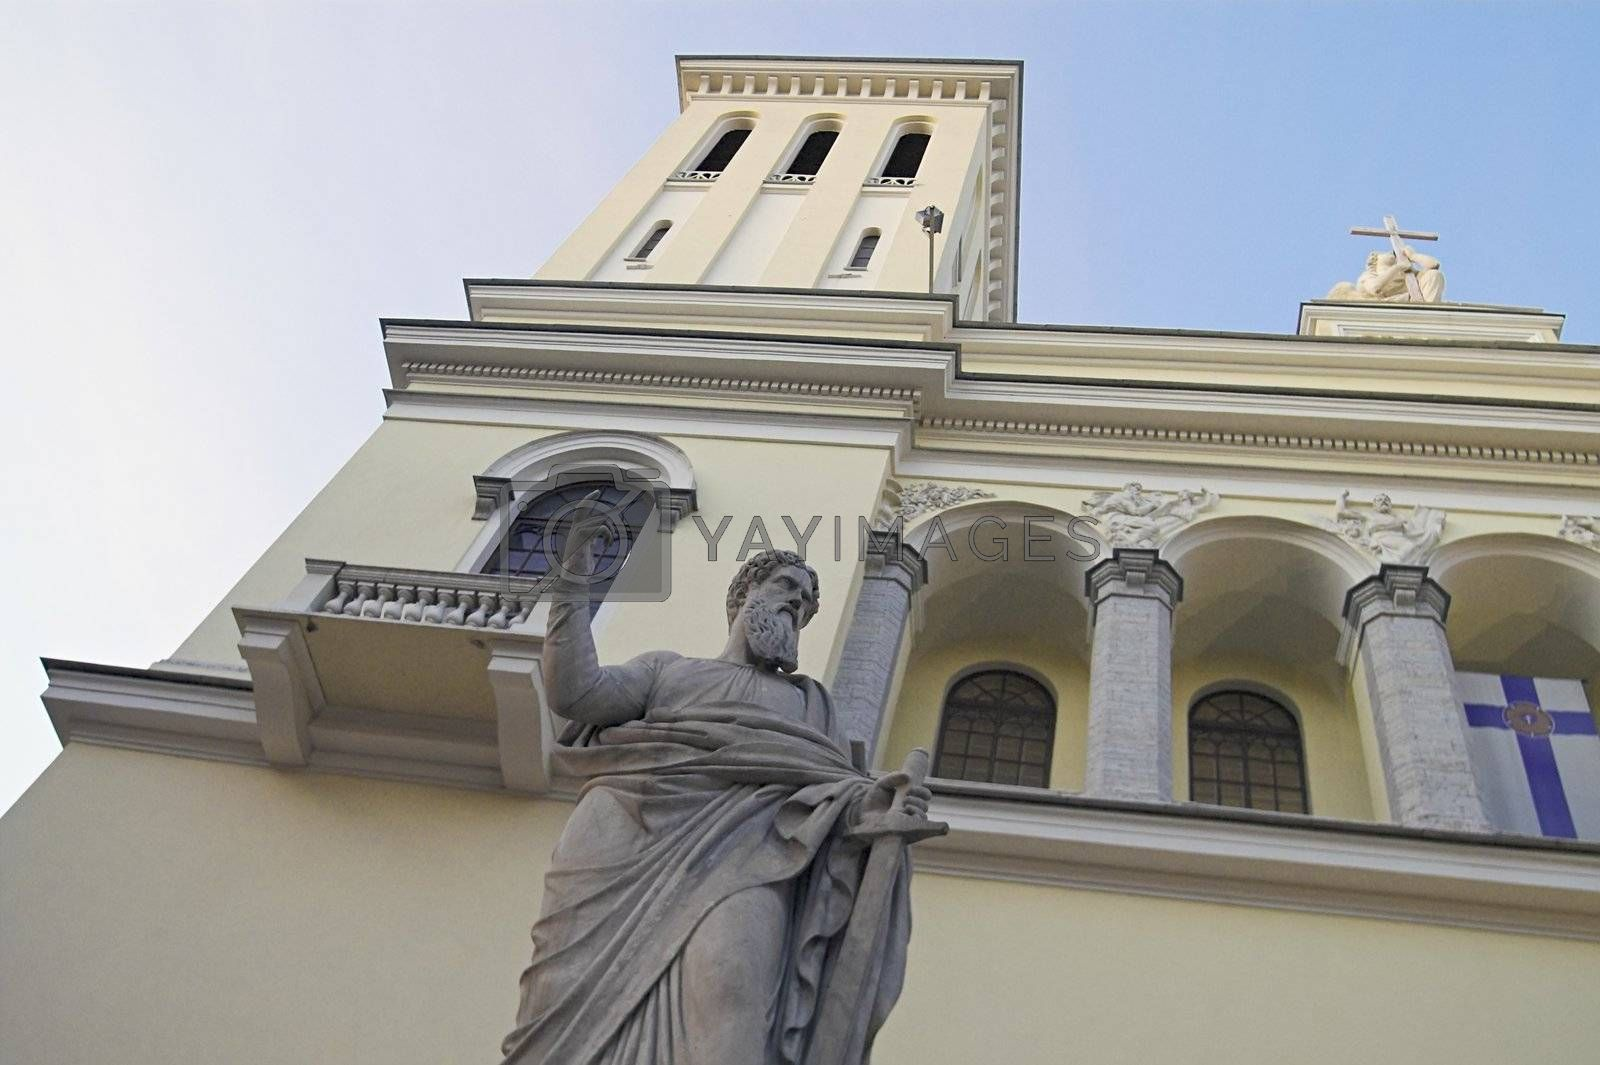 Saint Peter's Sculpture at the front of the German Evangelic Lutheran Church in Saint Petersburg, Russia.